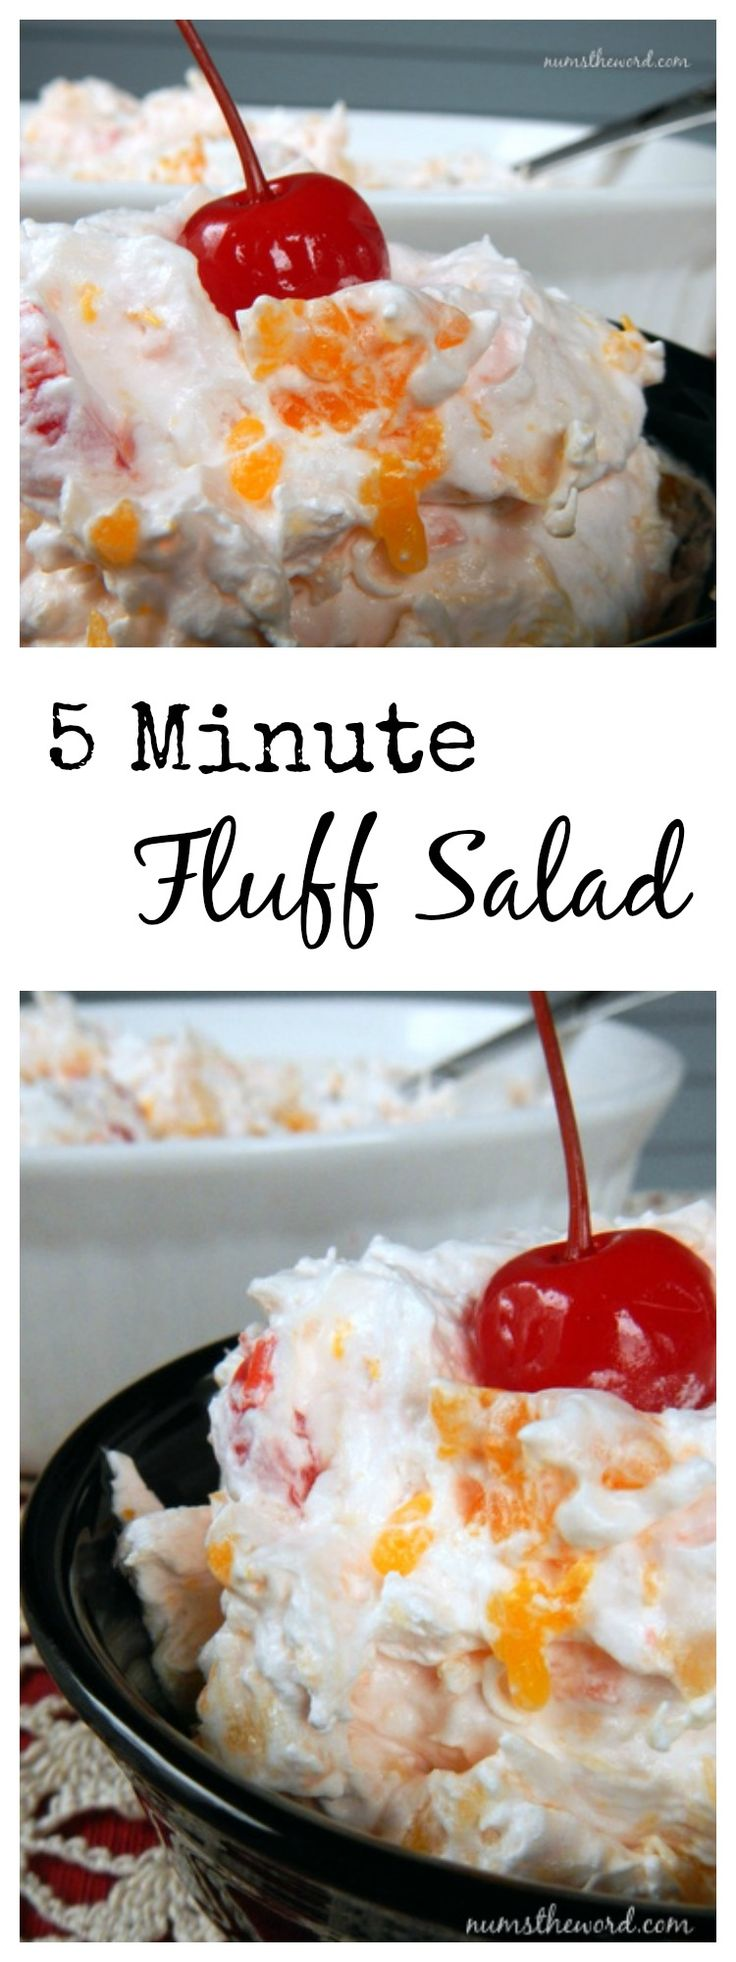 5 Minute Fluff Salad - This is so good! 5 ingredients you already have in your…